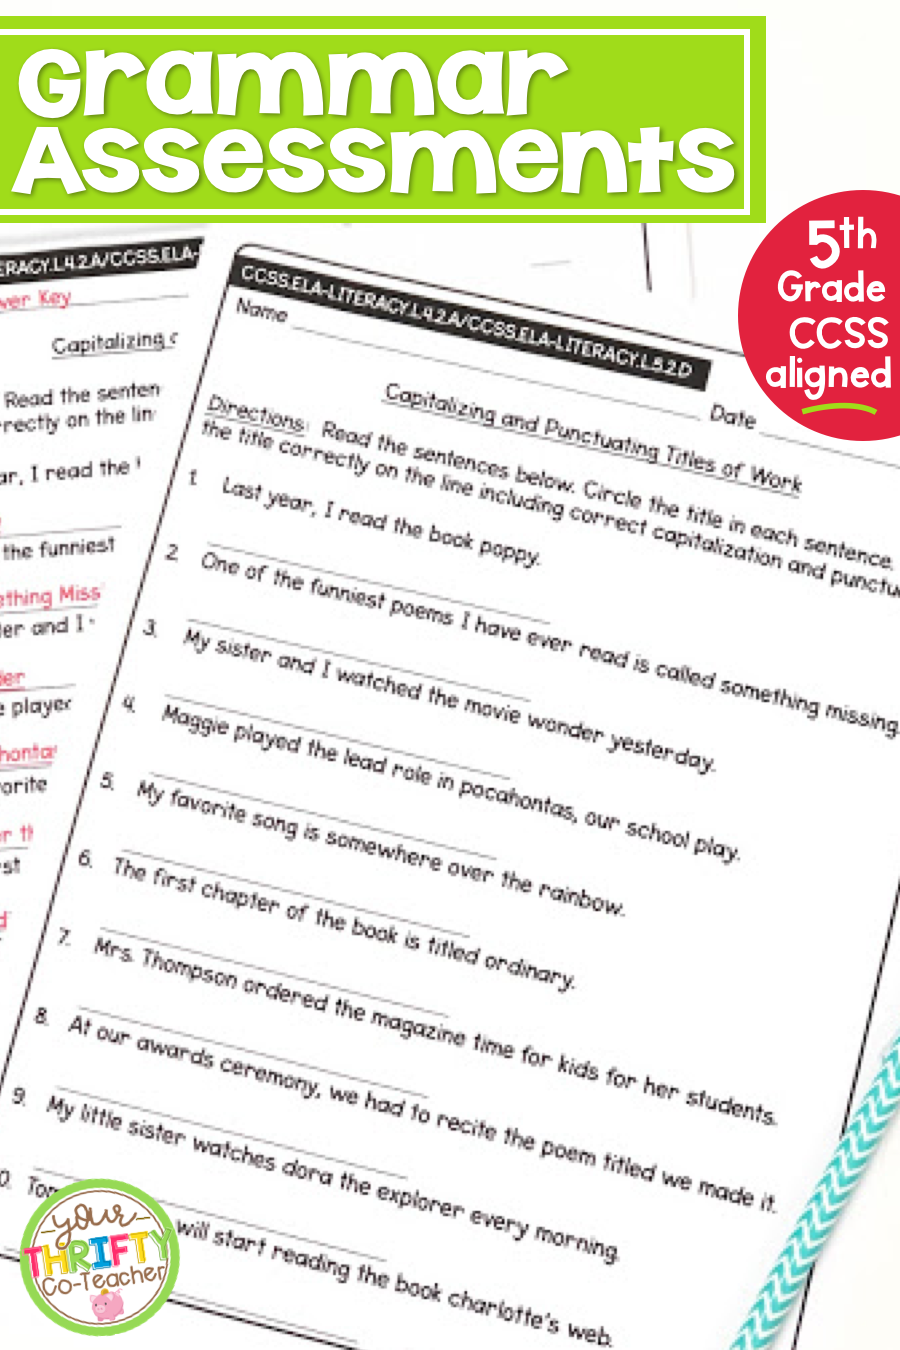 5th Grade Grammar Assessments Common Core Aligned Language Worksheets First Grade Worksheets Teaching Elementary [ 1350 x 900 Pixel ]